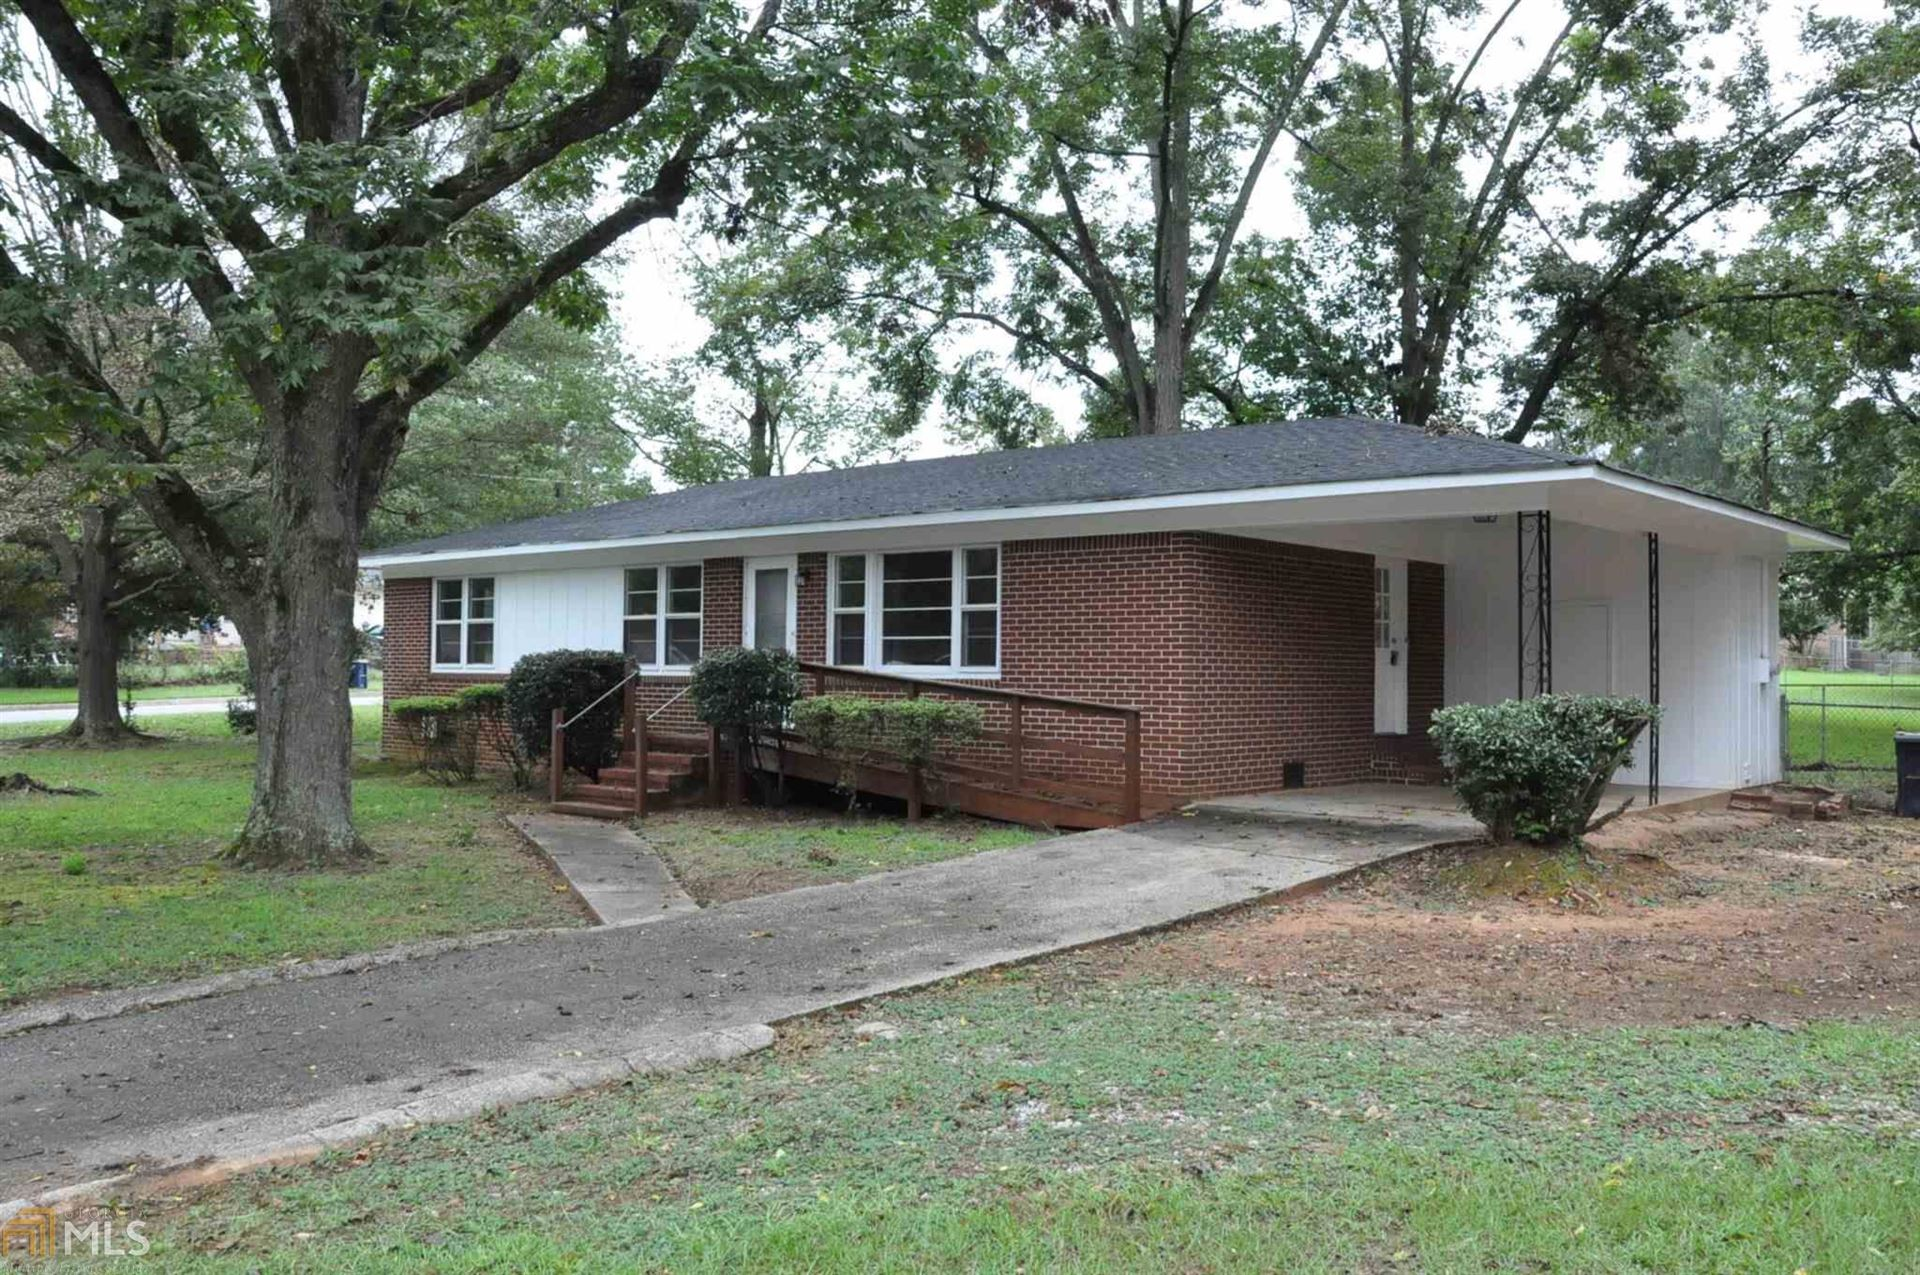 1128 Parkview Dr, Griffin, GA 30224 - MLS#: 8858499